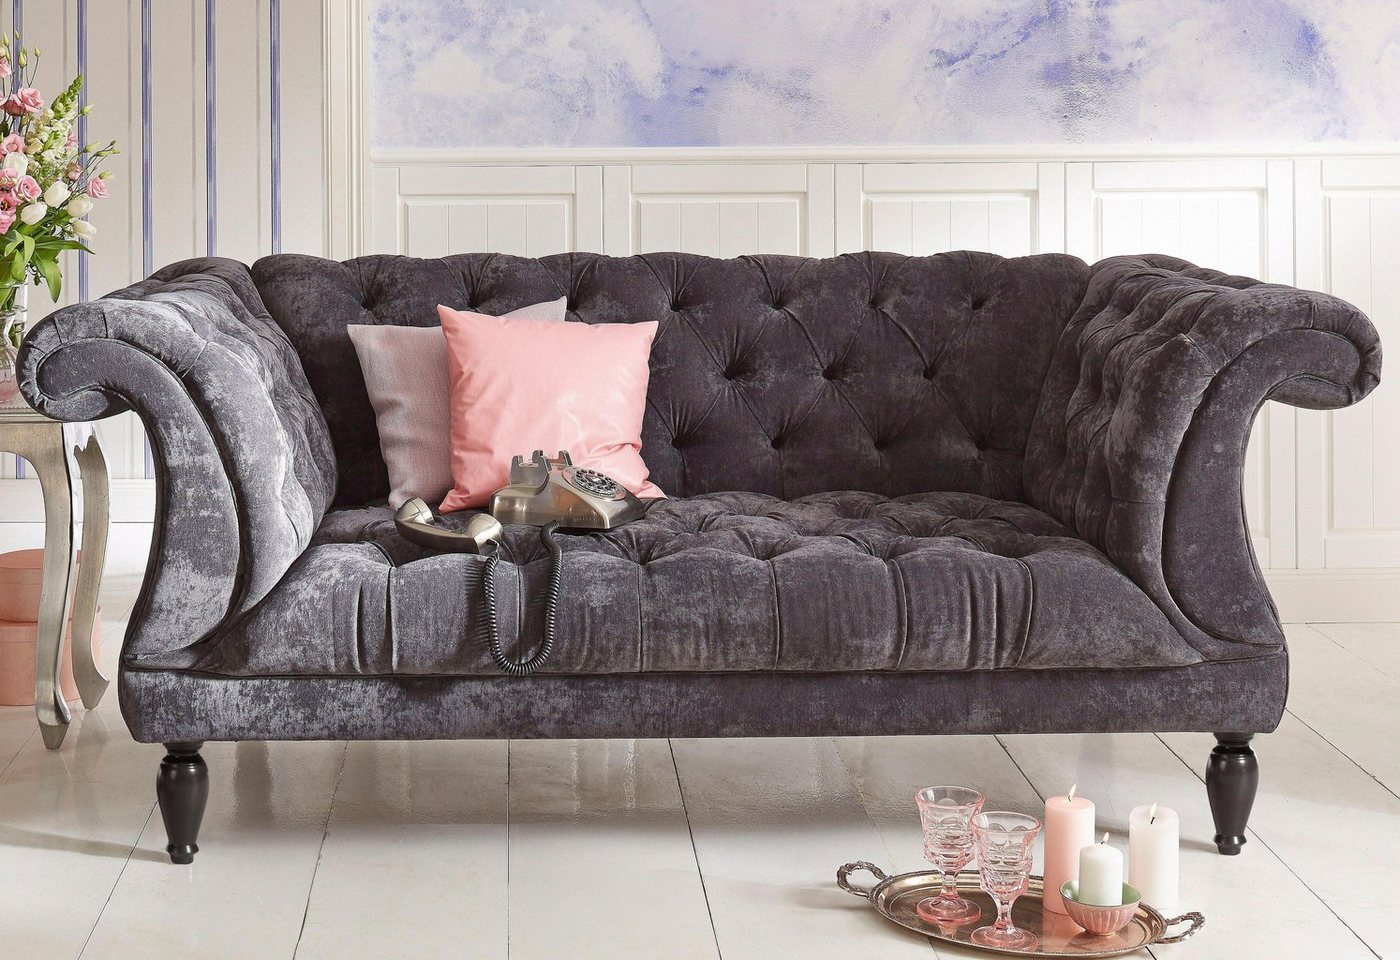 grau samt chesterfield sofas online kaufen m bel. Black Bedroom Furniture Sets. Home Design Ideas